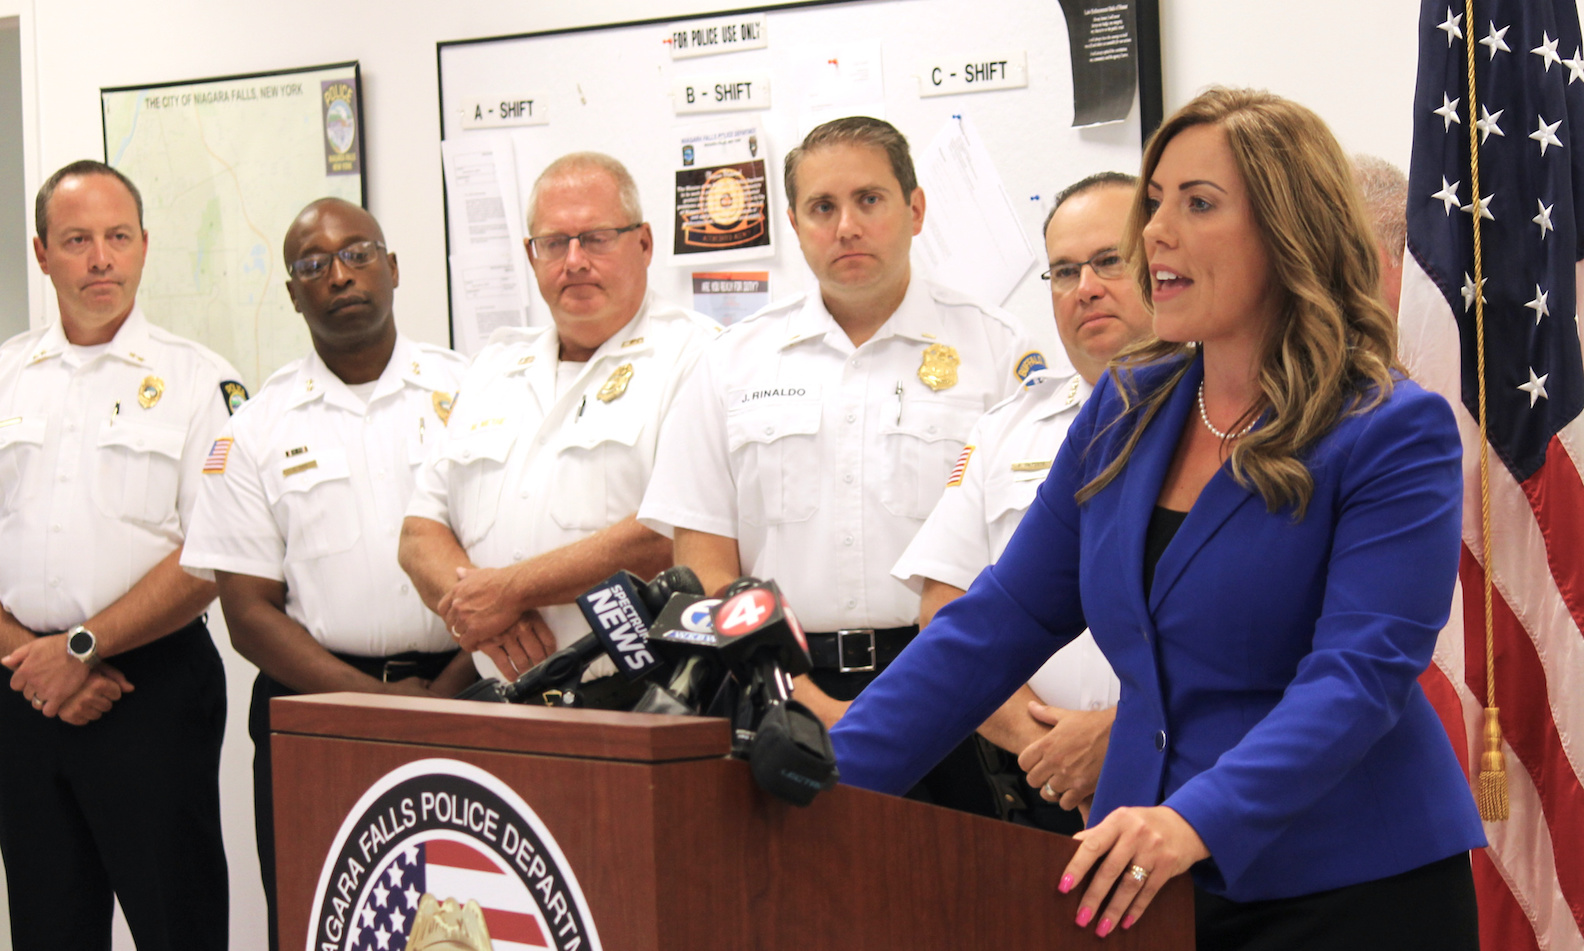 As local police chiefs and other senior department leaders look on, Niagara County District Attorney Caroline A. Wojtaszek announced every police department in the county has signed a memorandum of understanding with her office to mutually share crime data, statistics and information with the Niagara Intelligence and Crime Analysis Center.